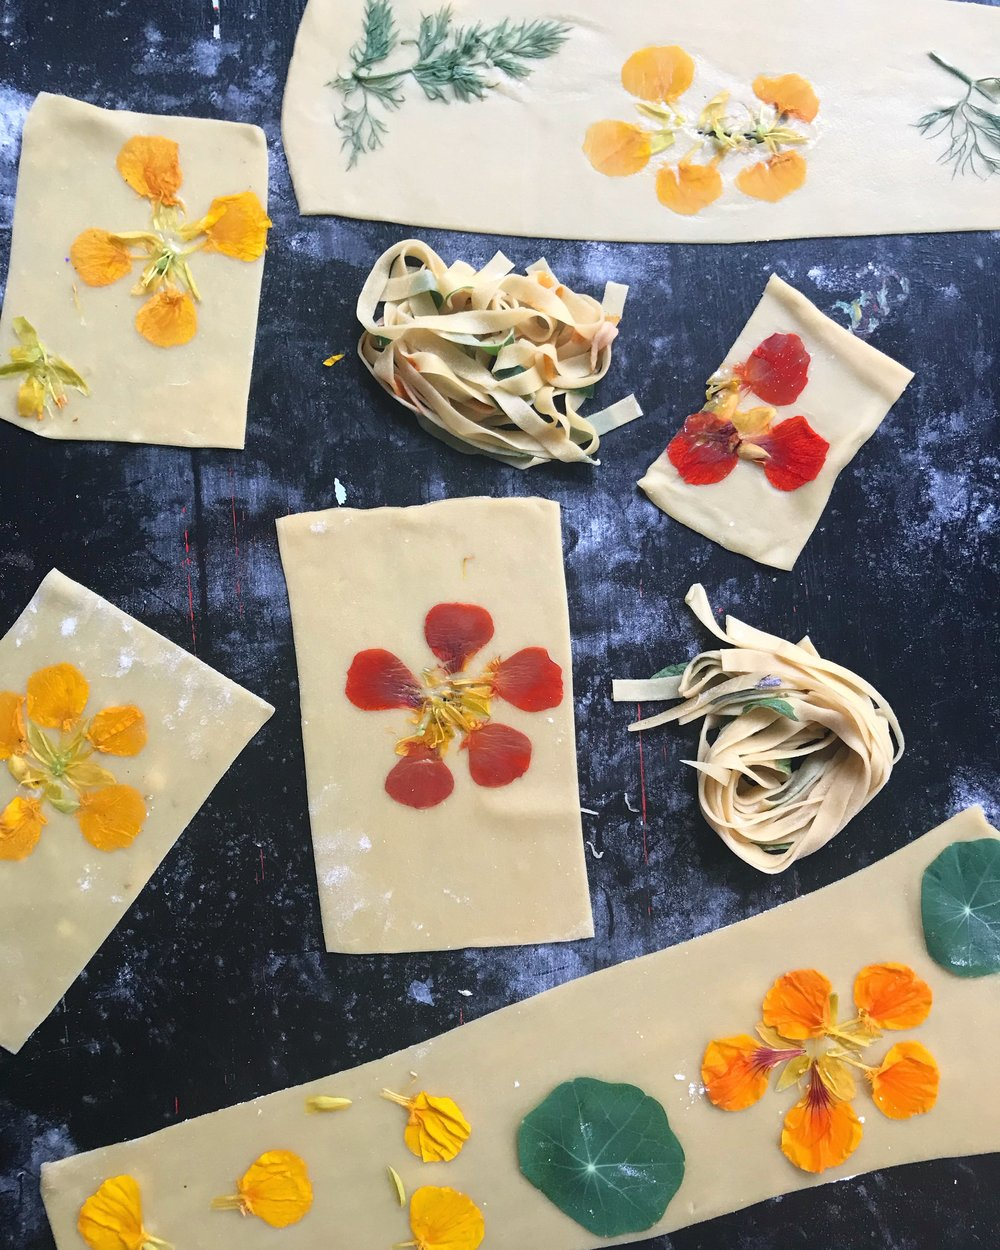 Homemade Pasta Edible Flowers 1